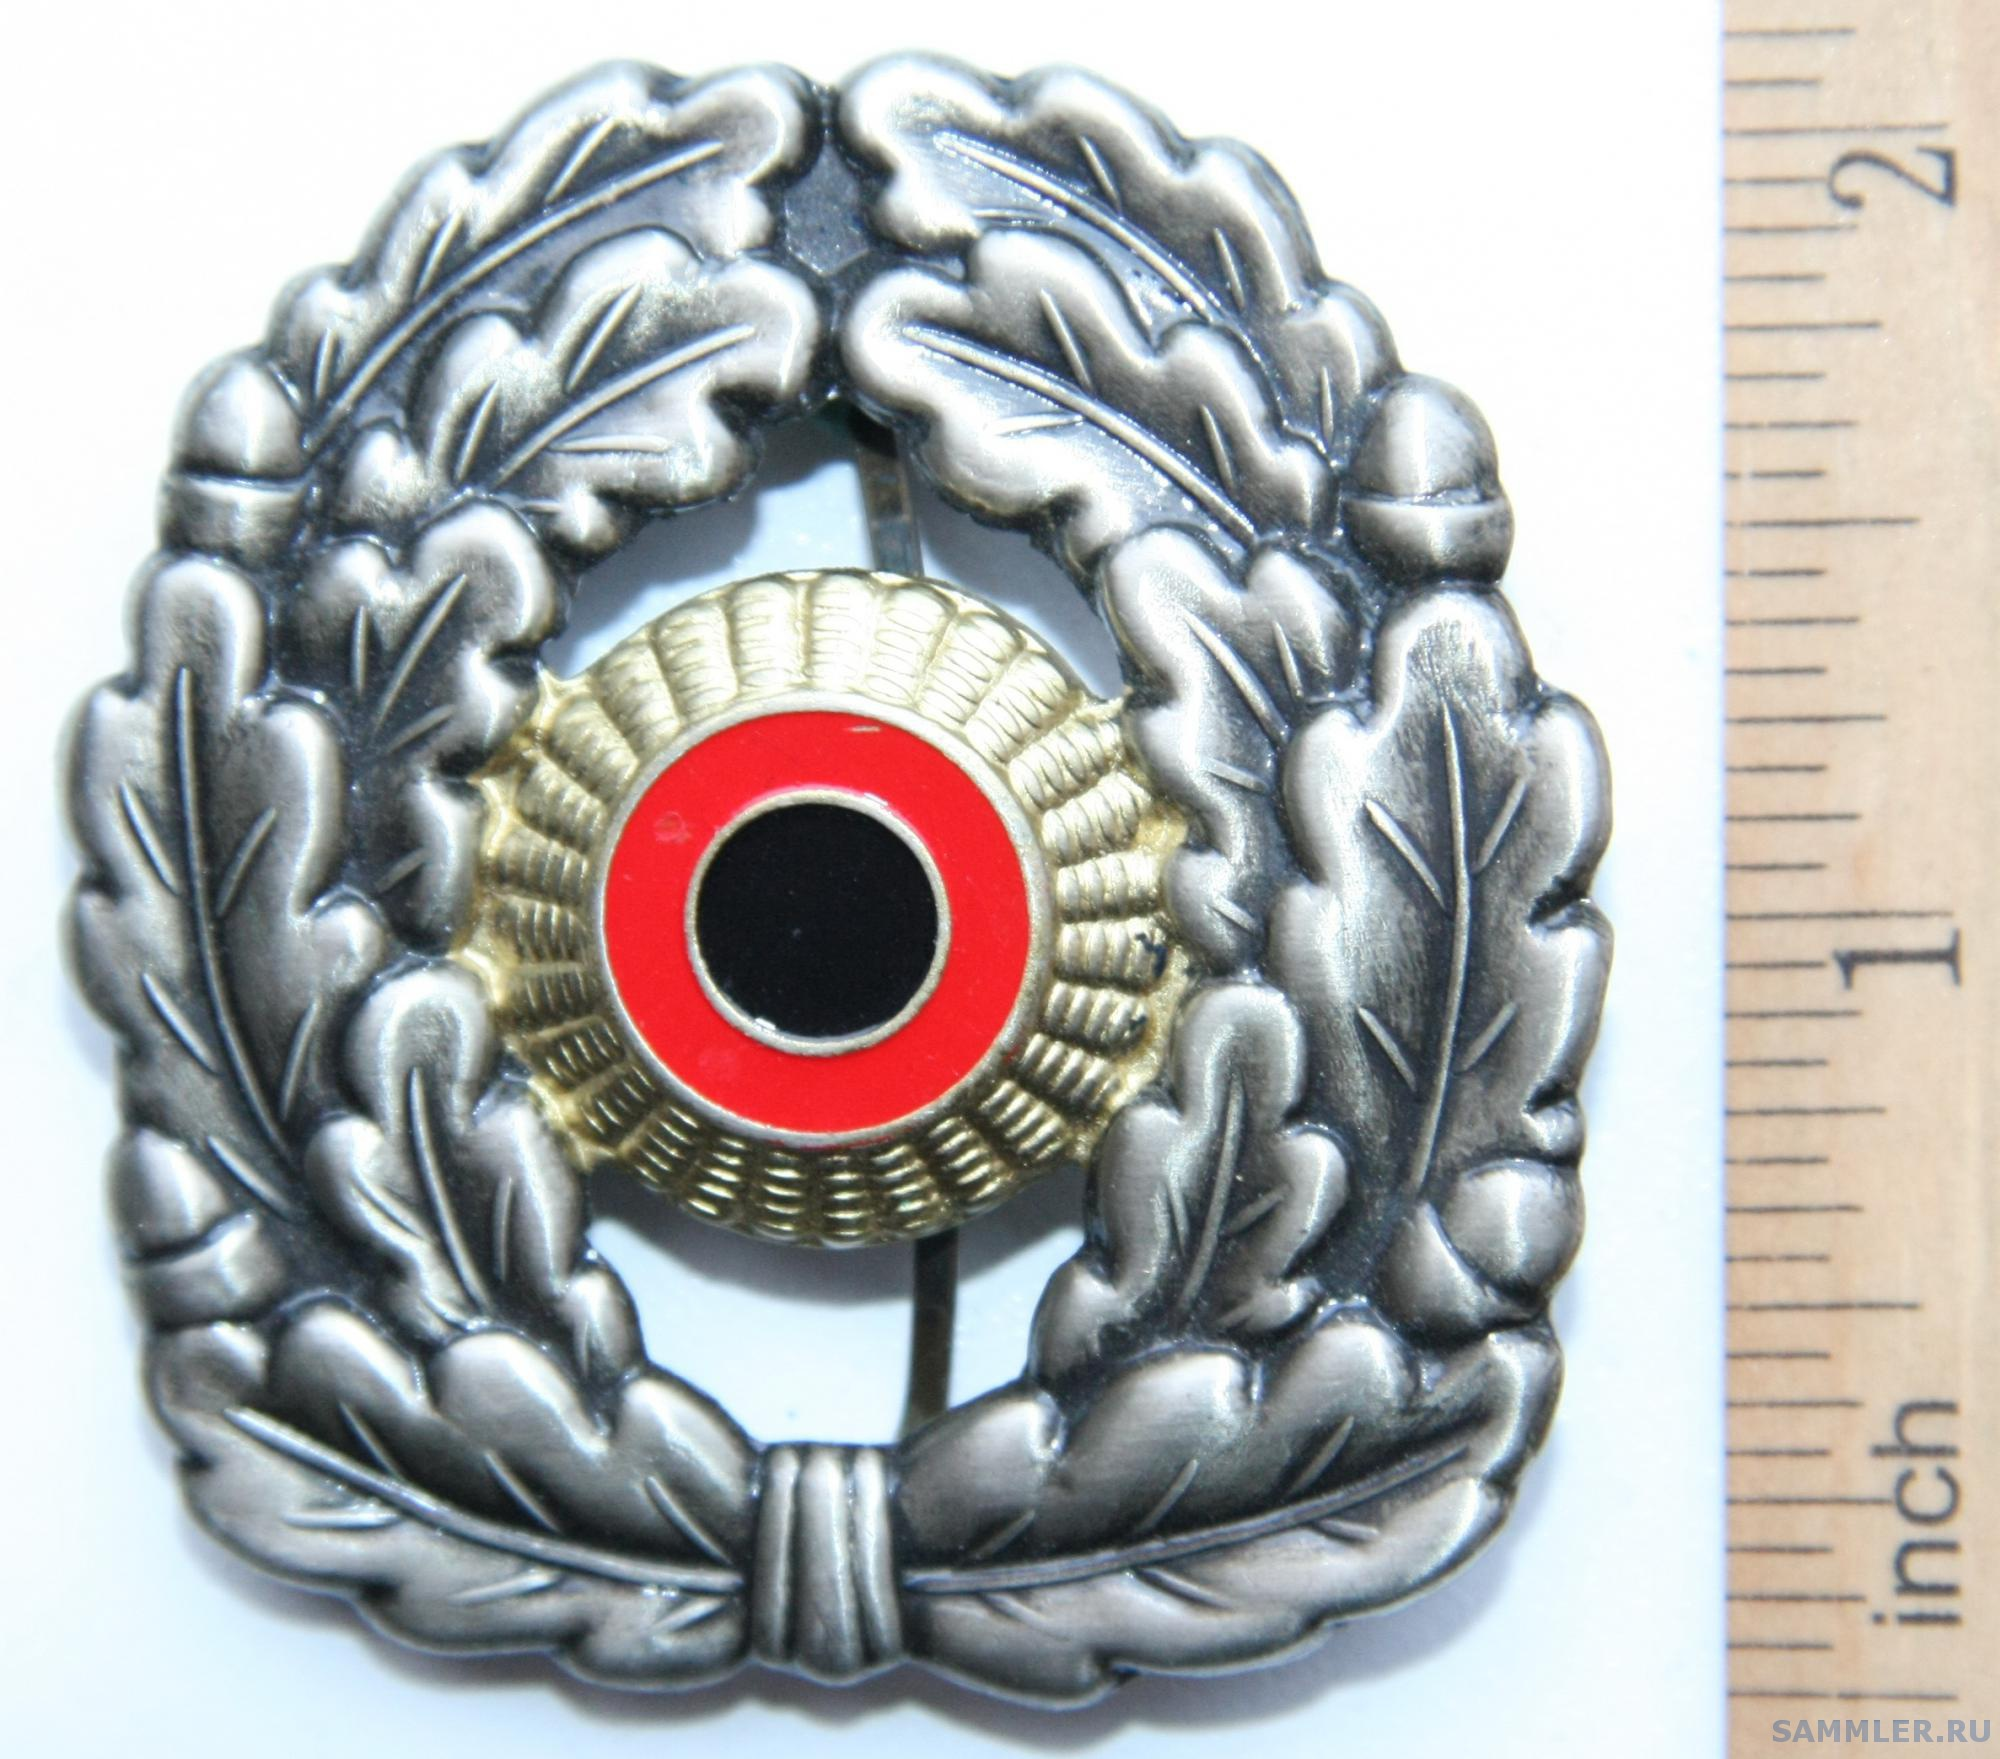 German Bundeswehr Beret Cap Badge_001.JPG